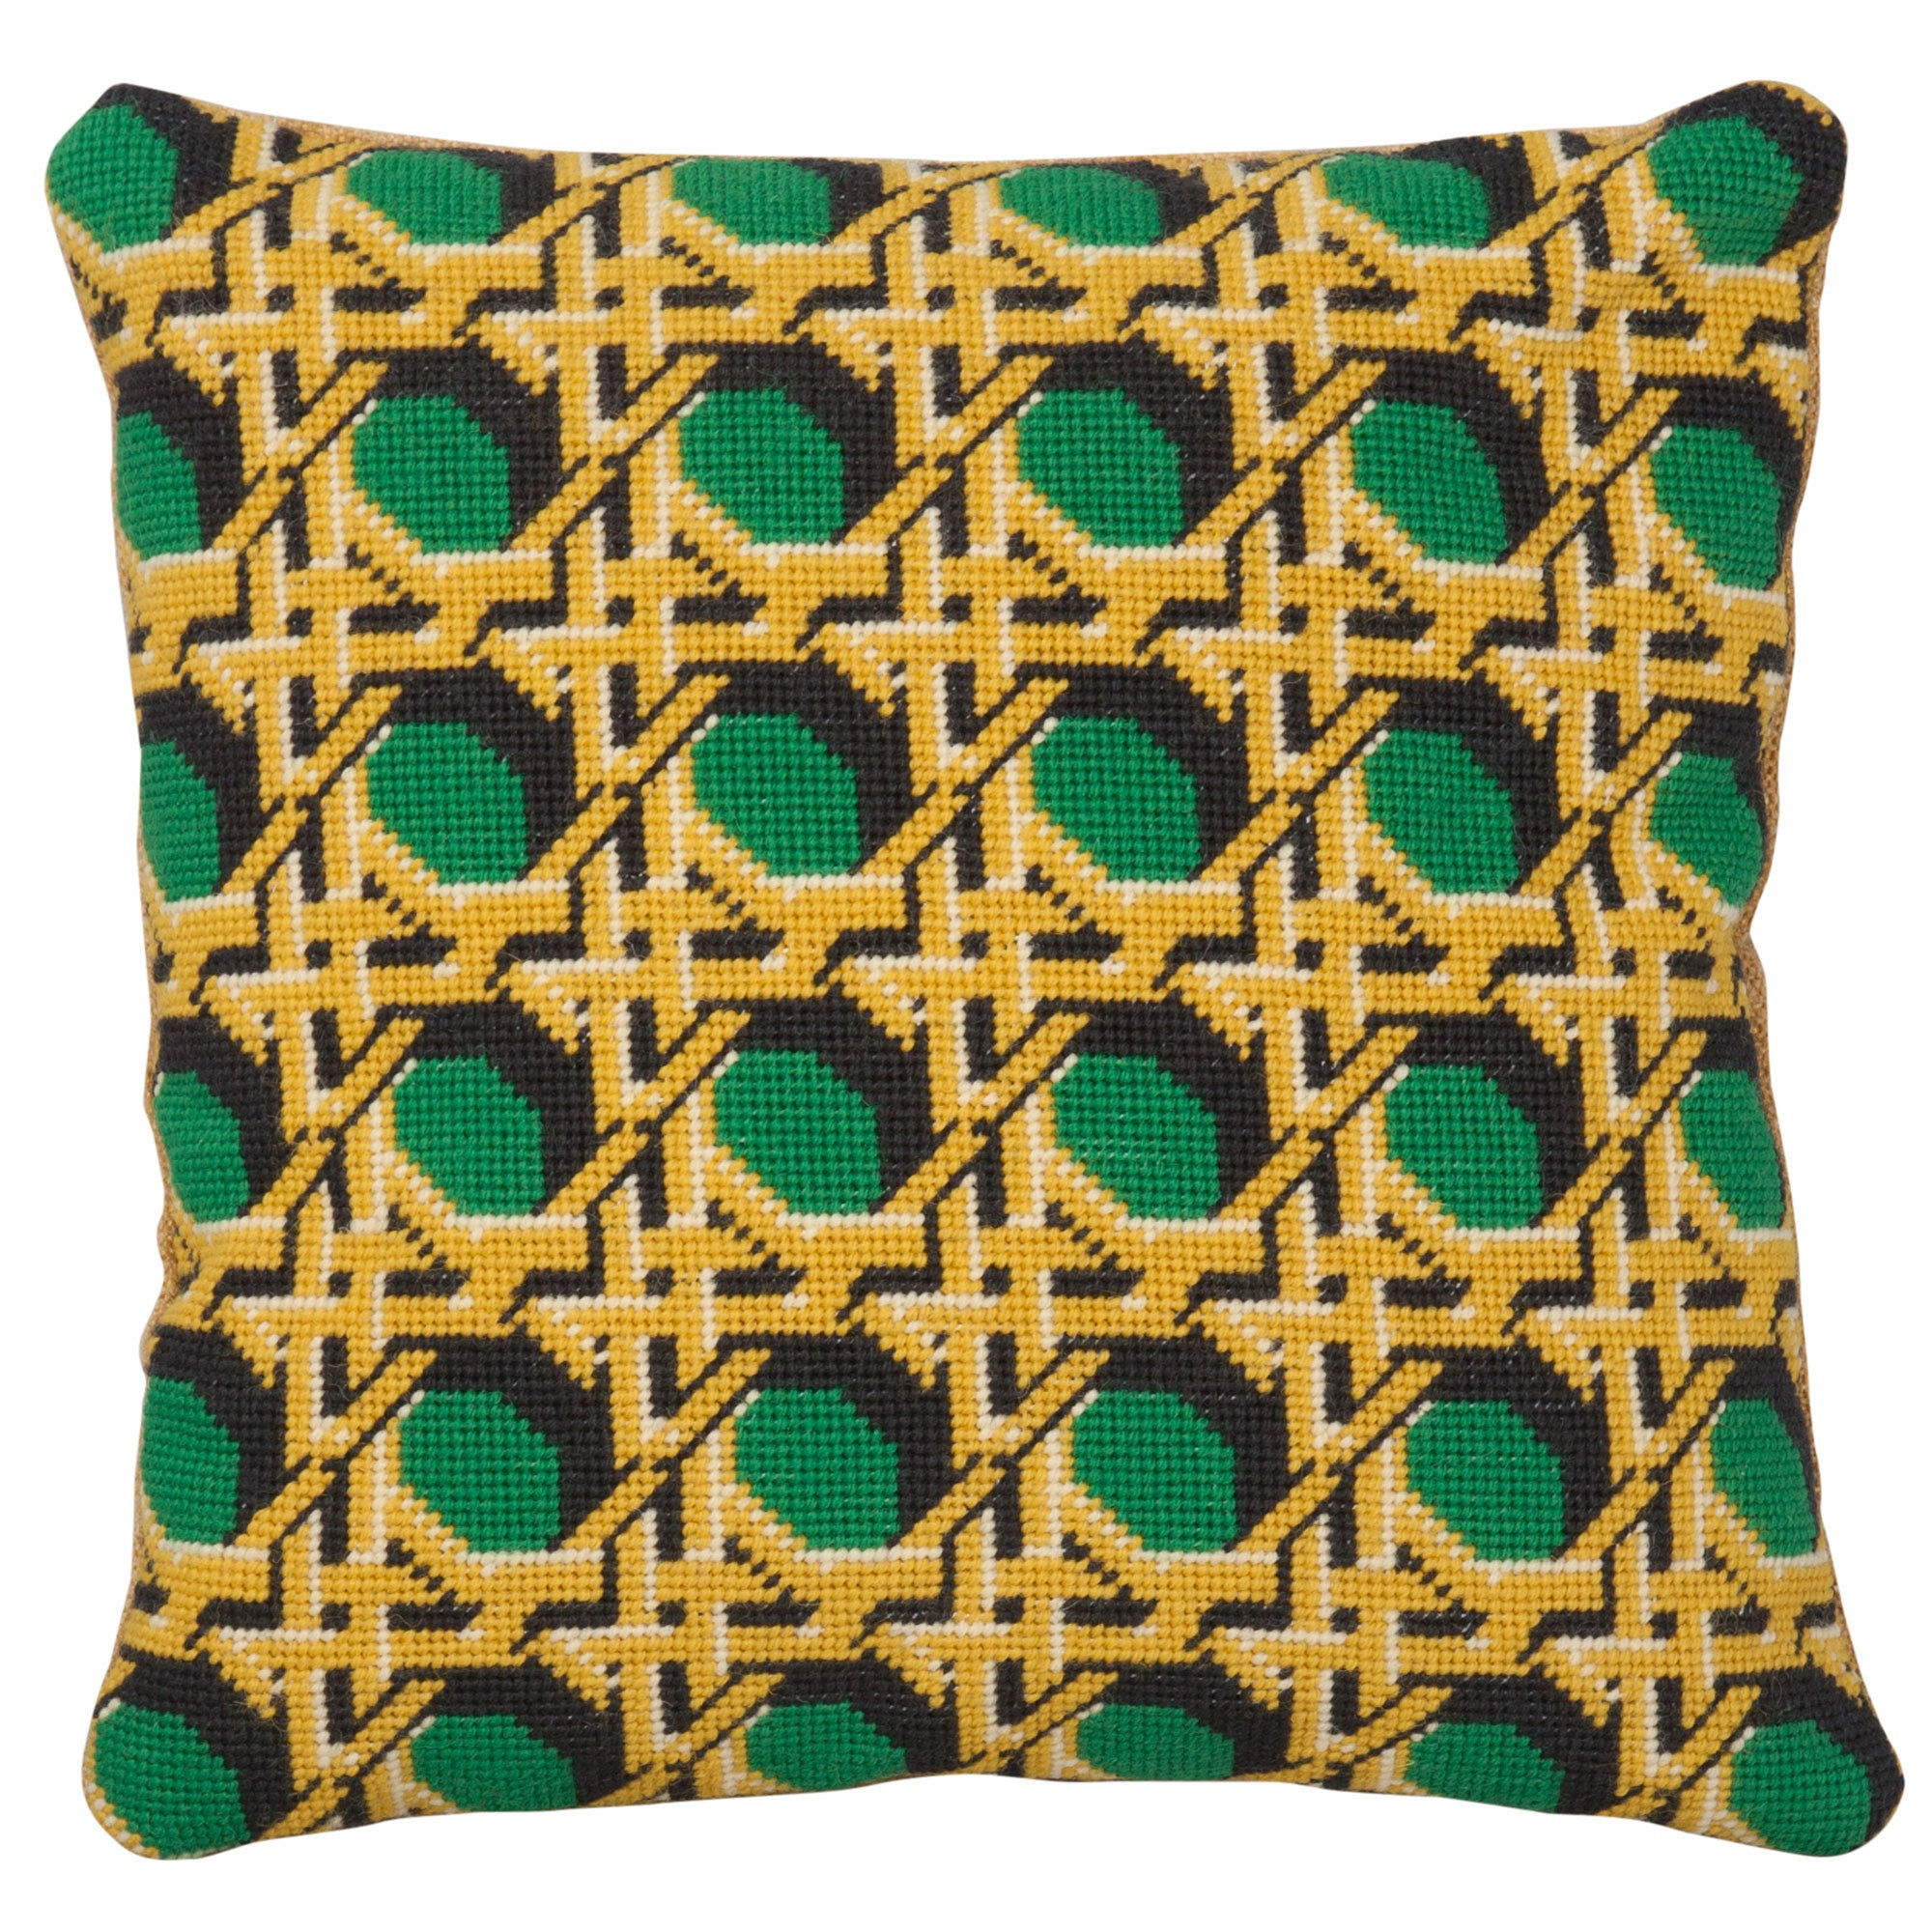 Pentreath & Hall Regency Caning Square Needlepoint Cushion Green Fine Cell Work